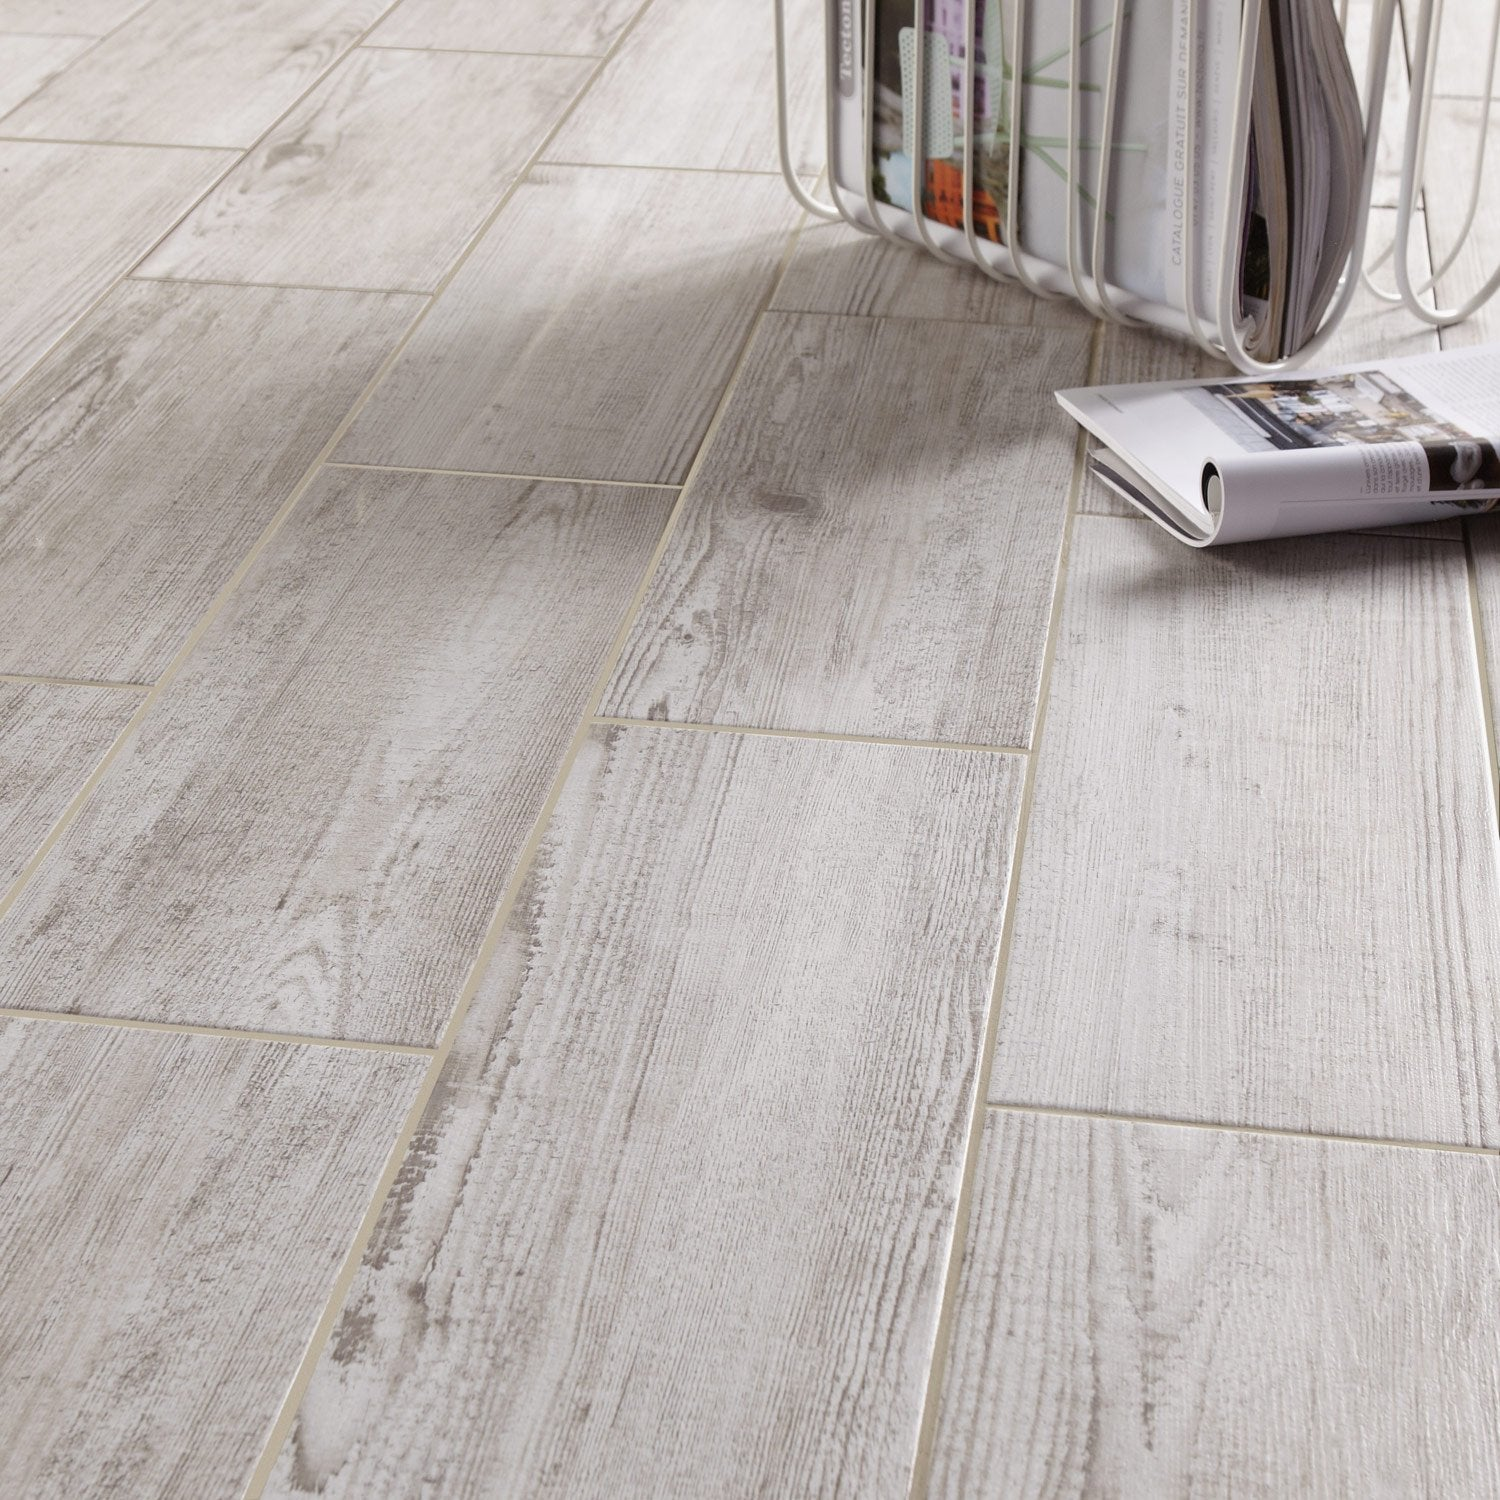 Carrelage salon gris clair for Carrelage gris clair